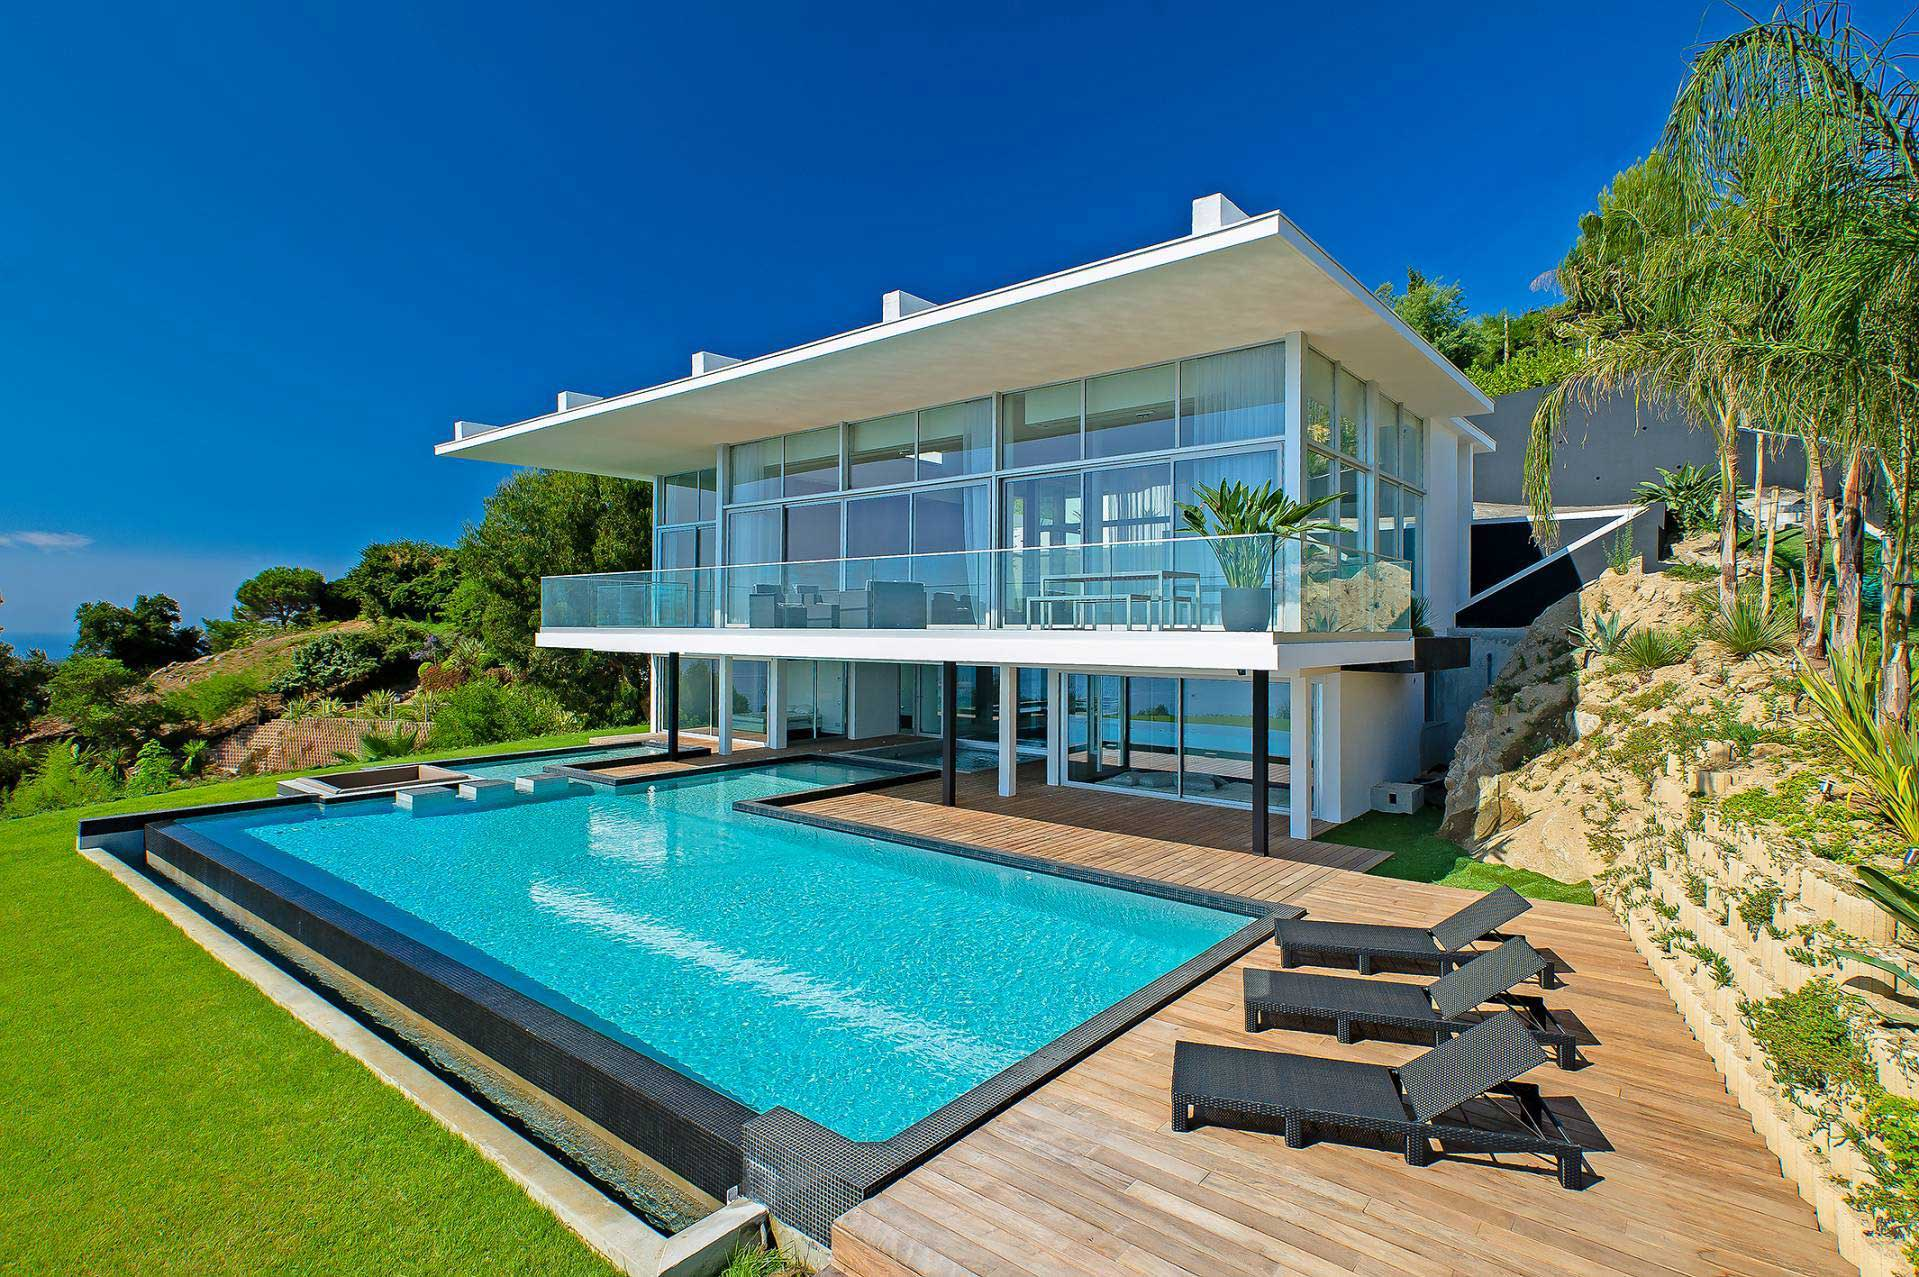 Villa contemporaine avec piscine saint tropez for Piscine saintes